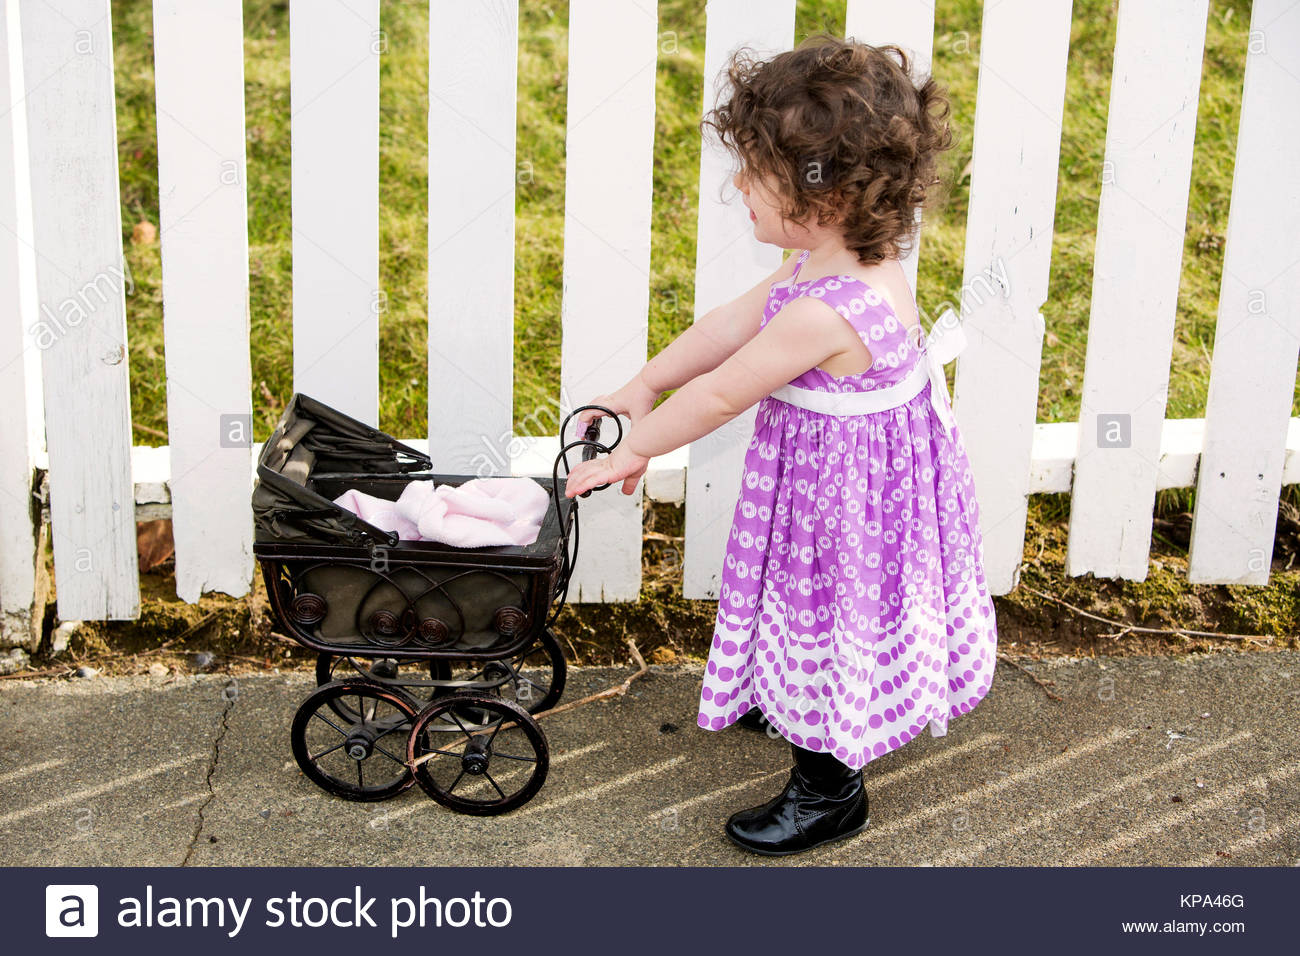 f7a4a11fc little girl pushing a vintage stroller Stock Photo  168638584 - Alamy